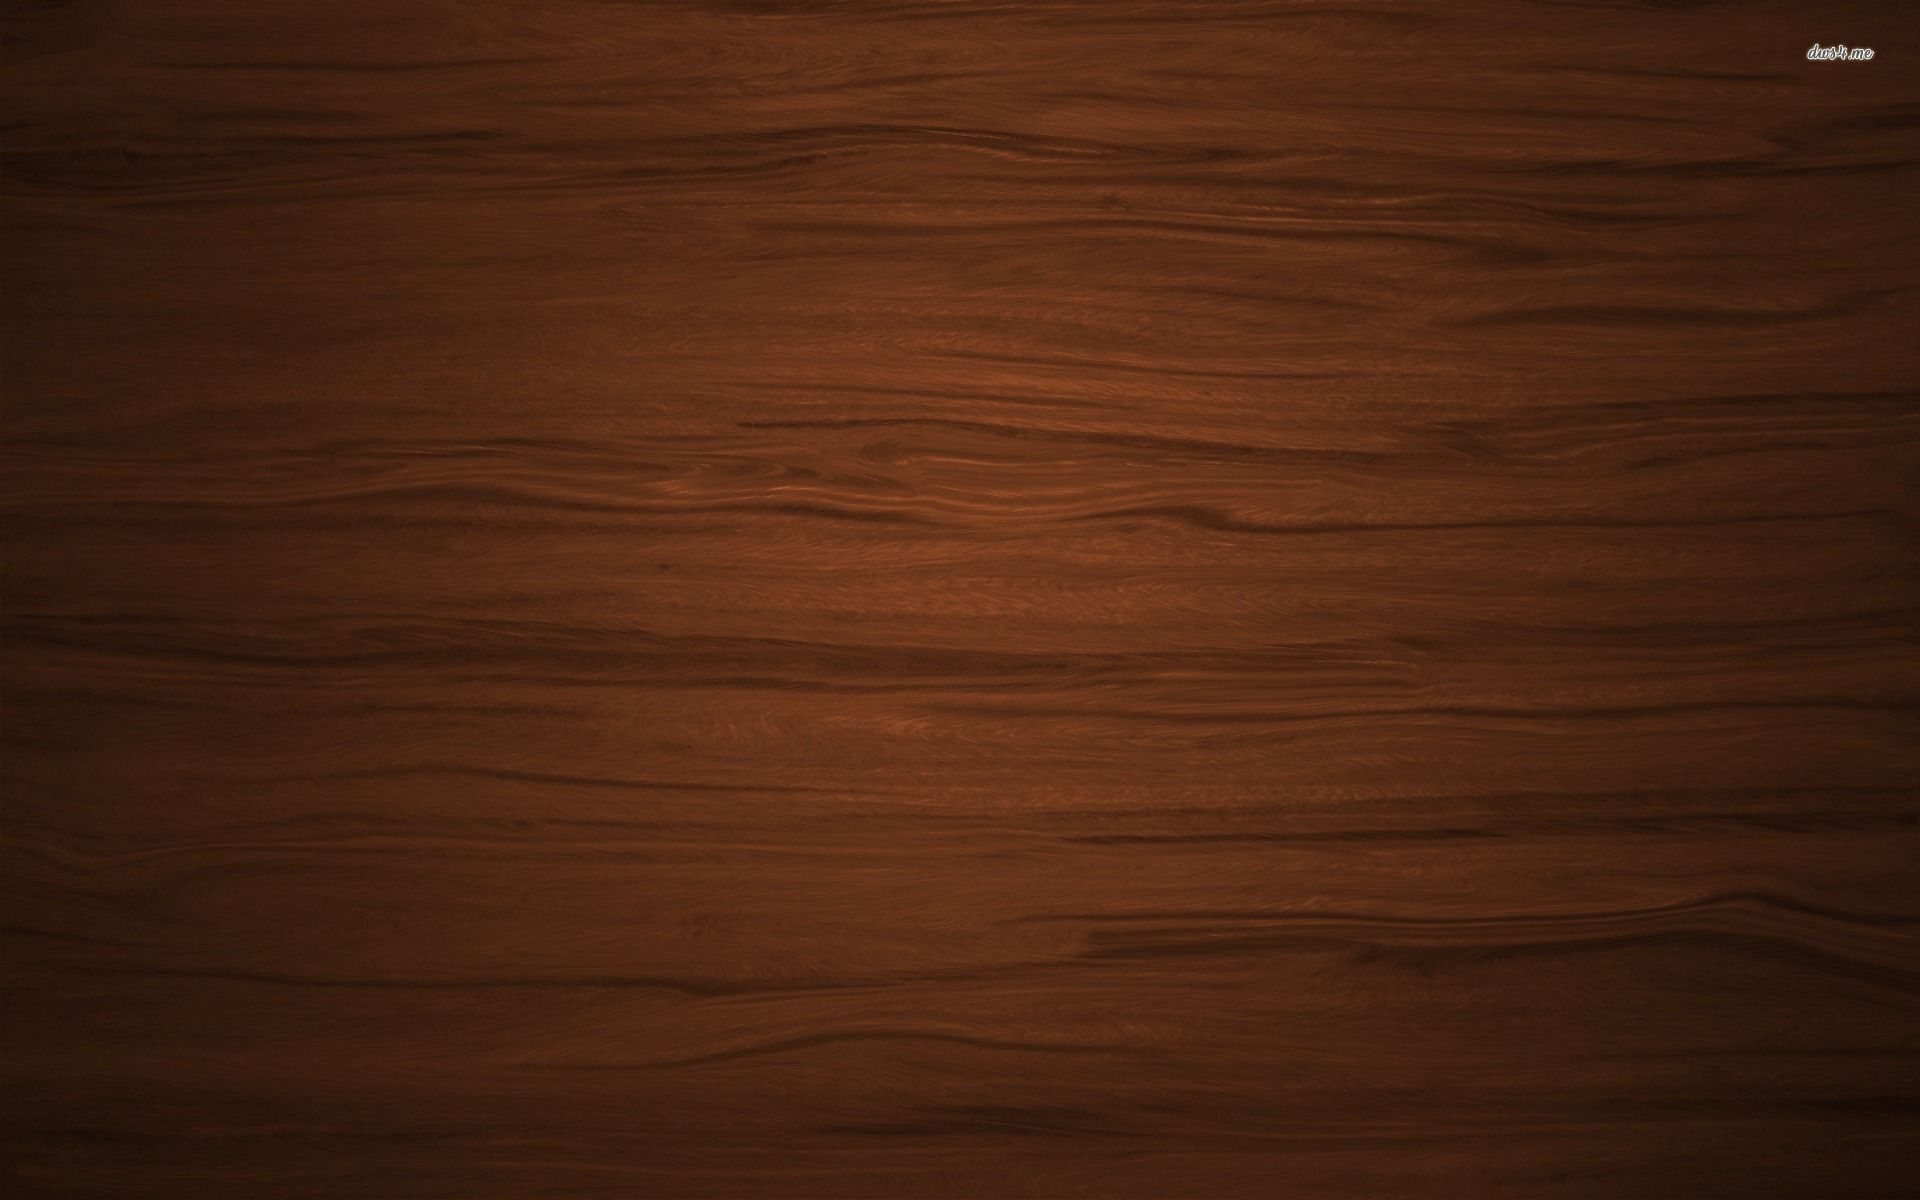 Wood texture wallpaper - Abstract wallpapers - #20277